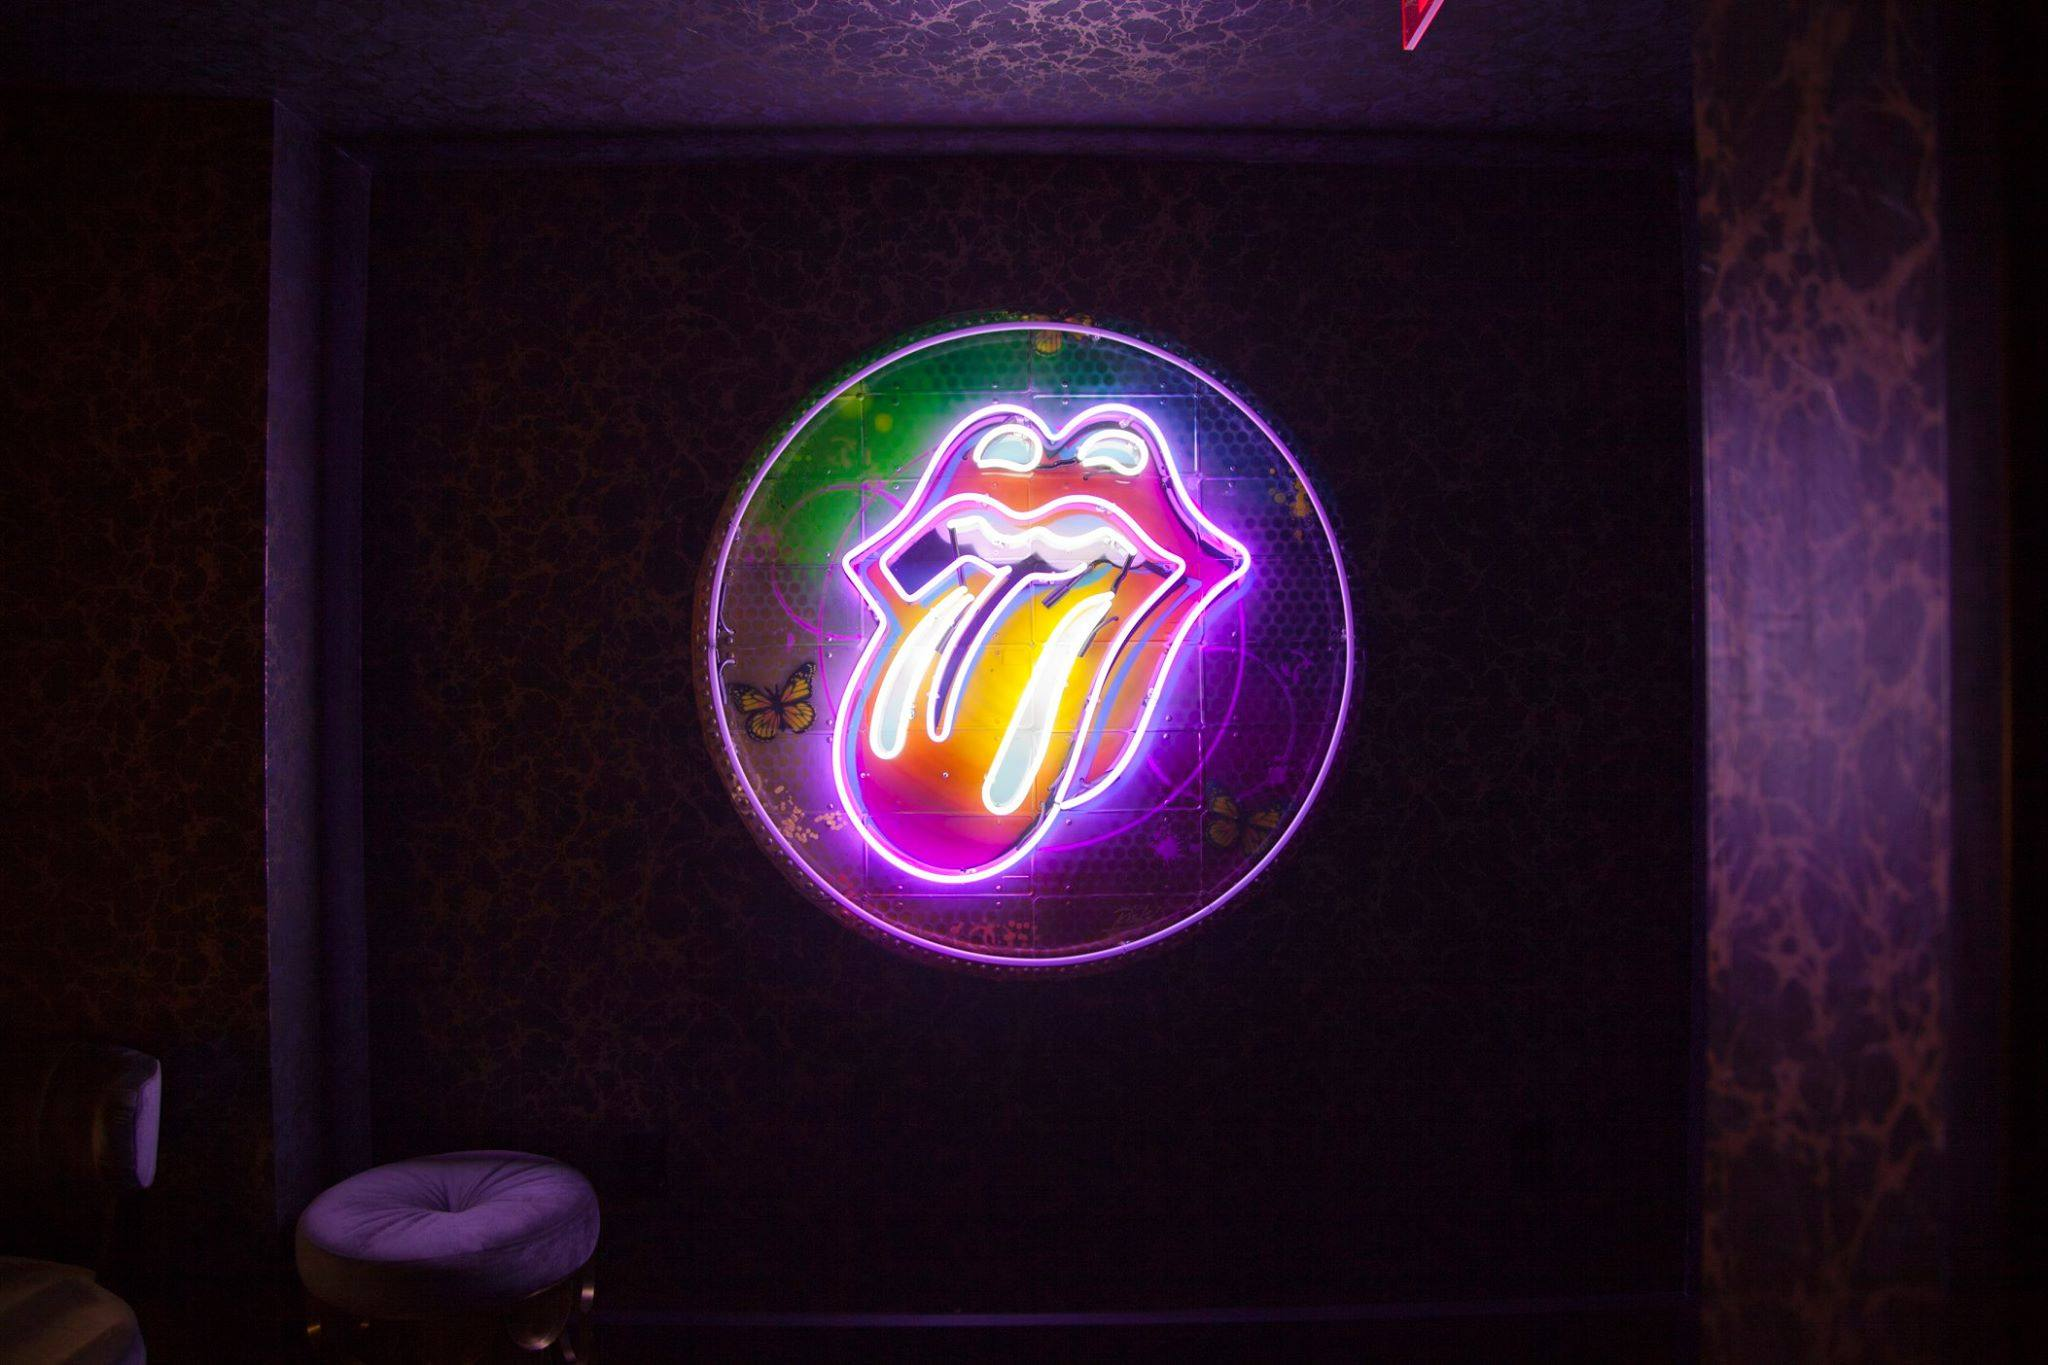 Rolling Stones neon art by RISK at The Mayfair Hotel